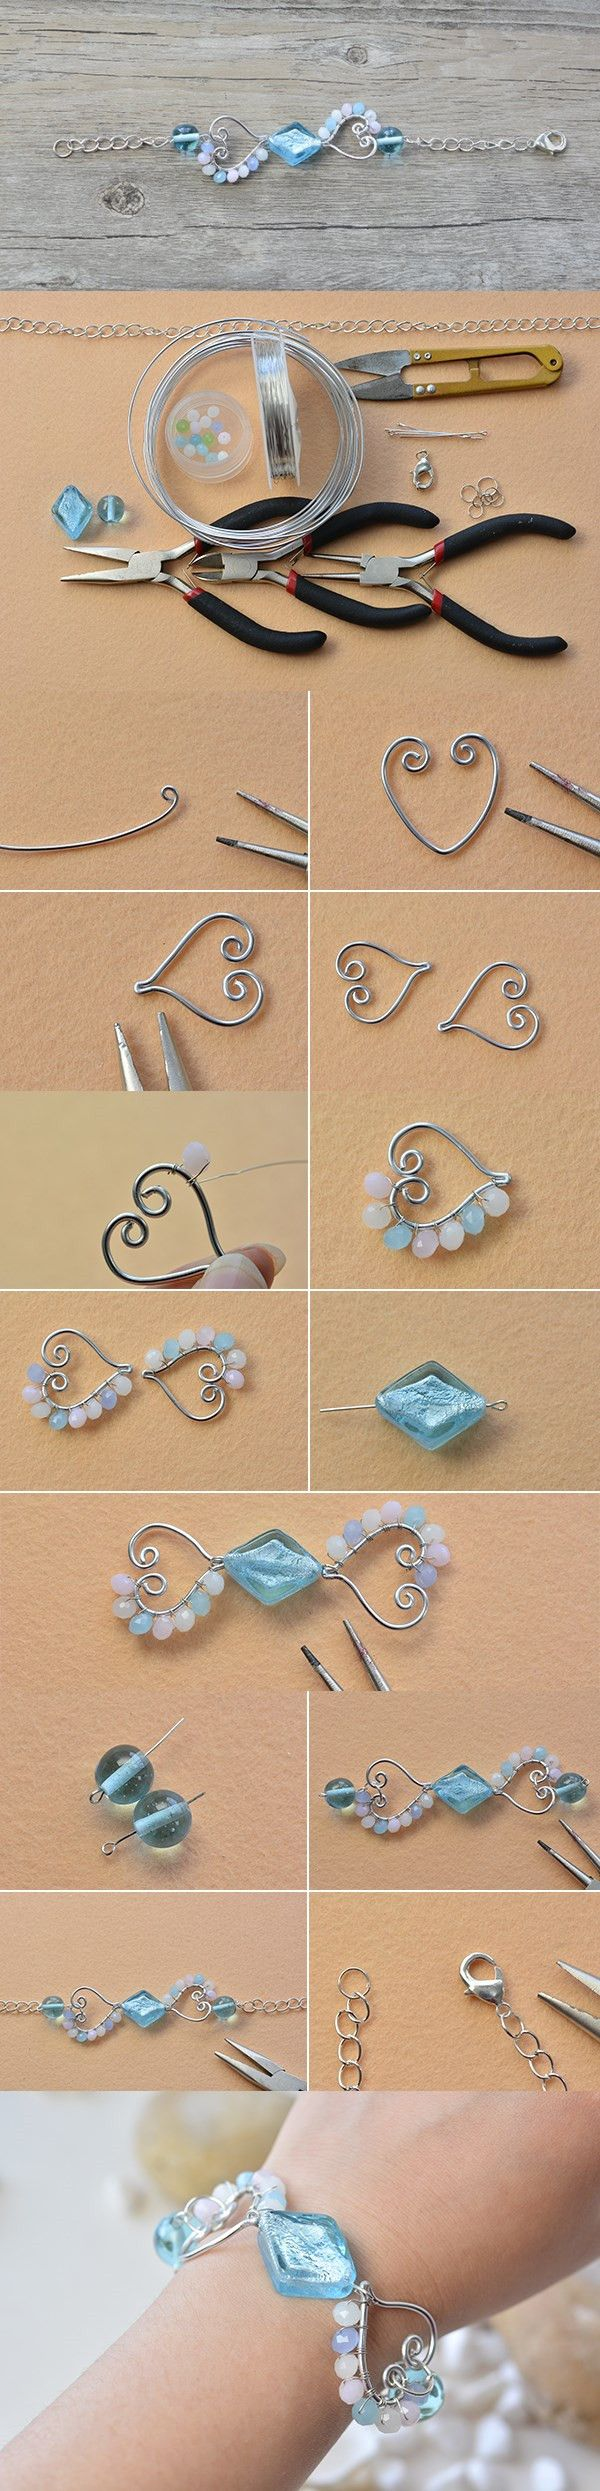 Wire Wrapping Heart Beaded Charms Bracelet DIY